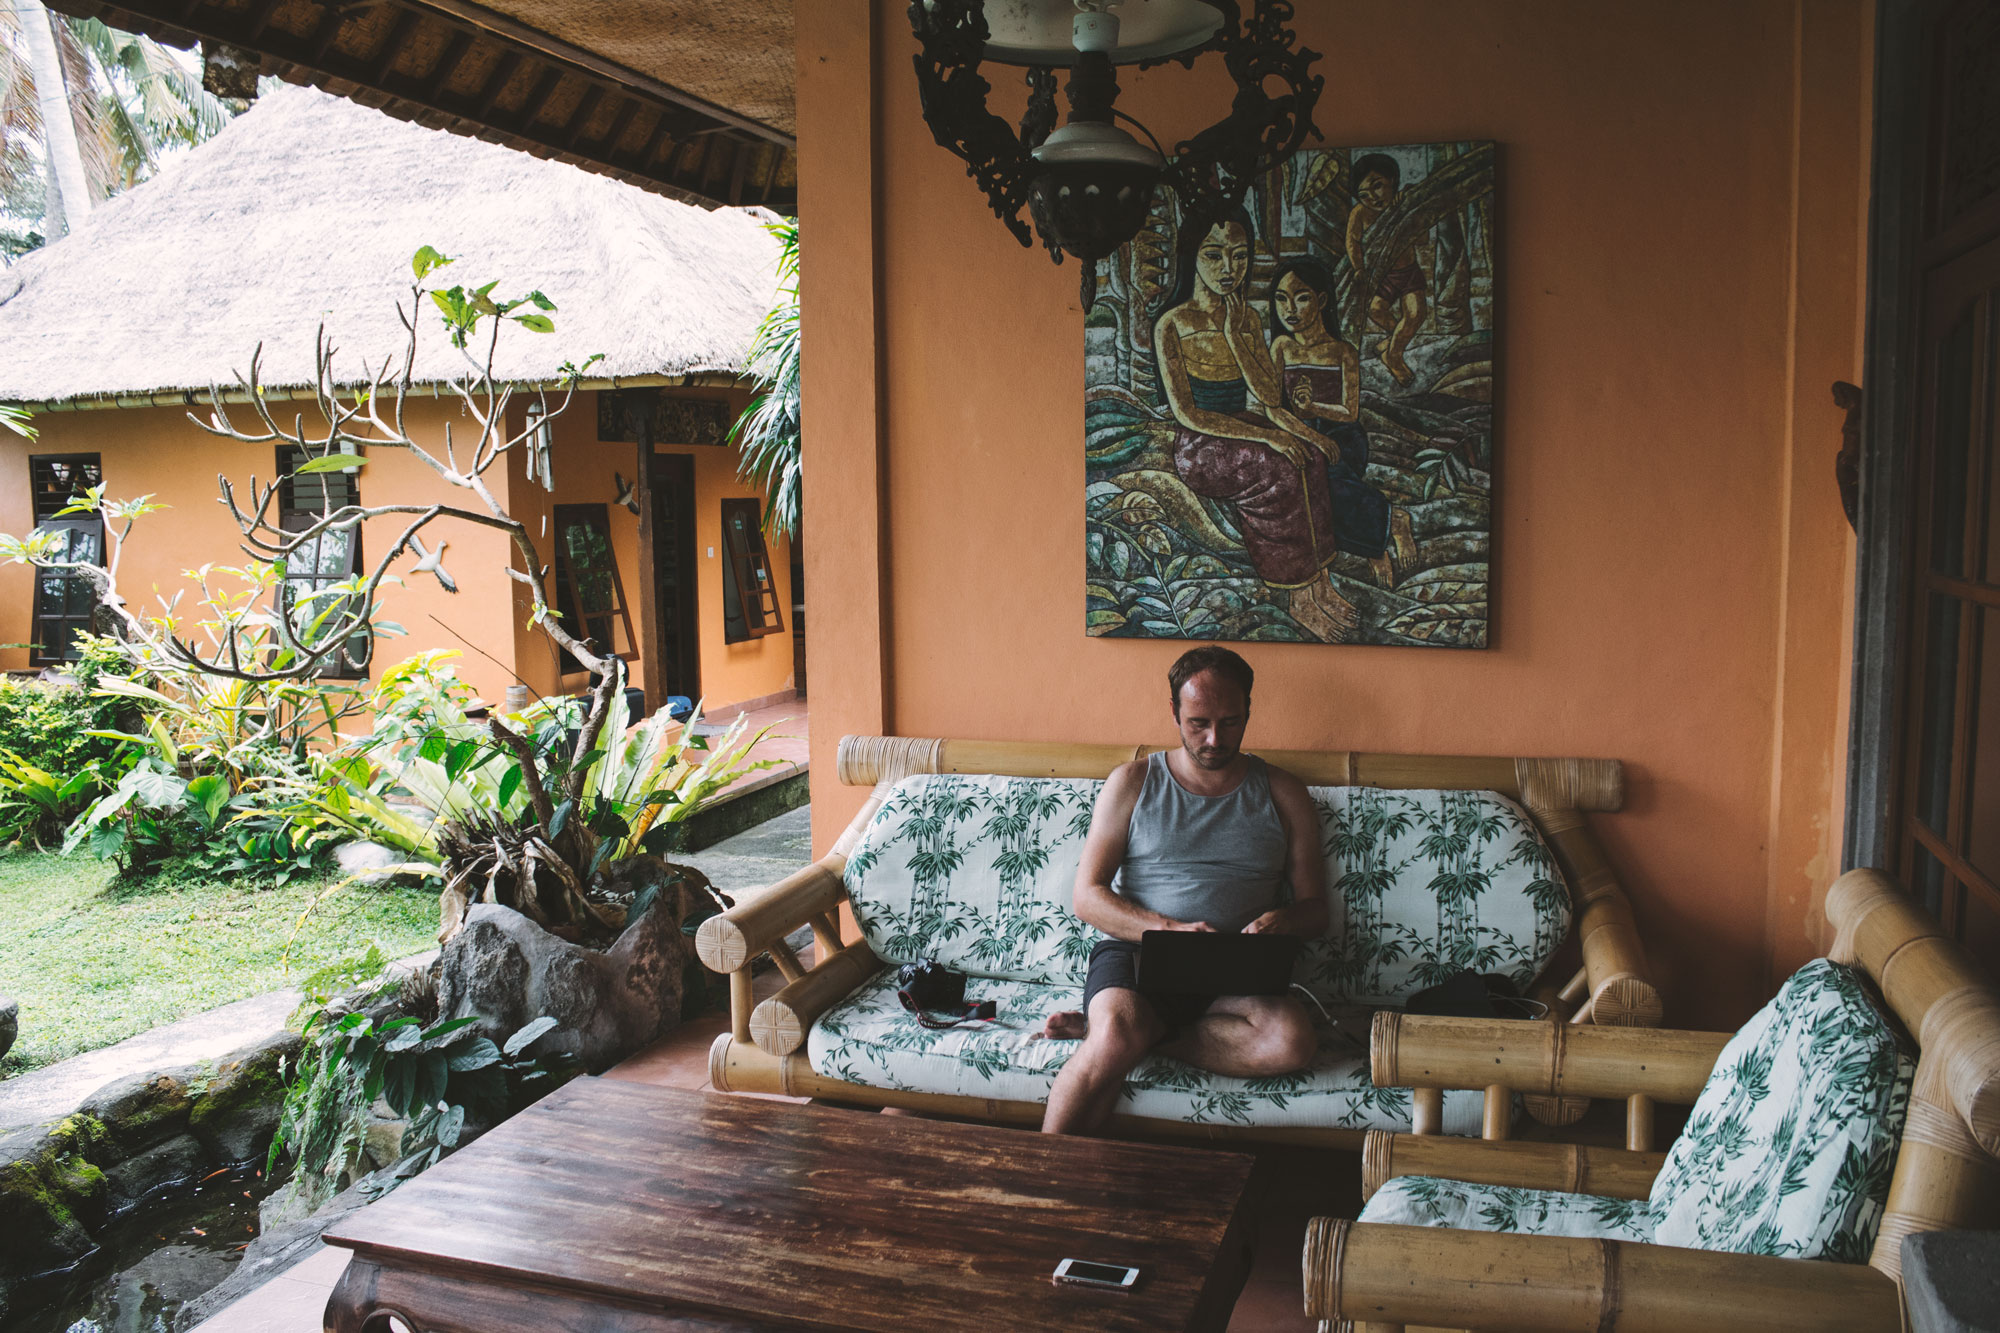 Digital Nomad, Working in Ubud